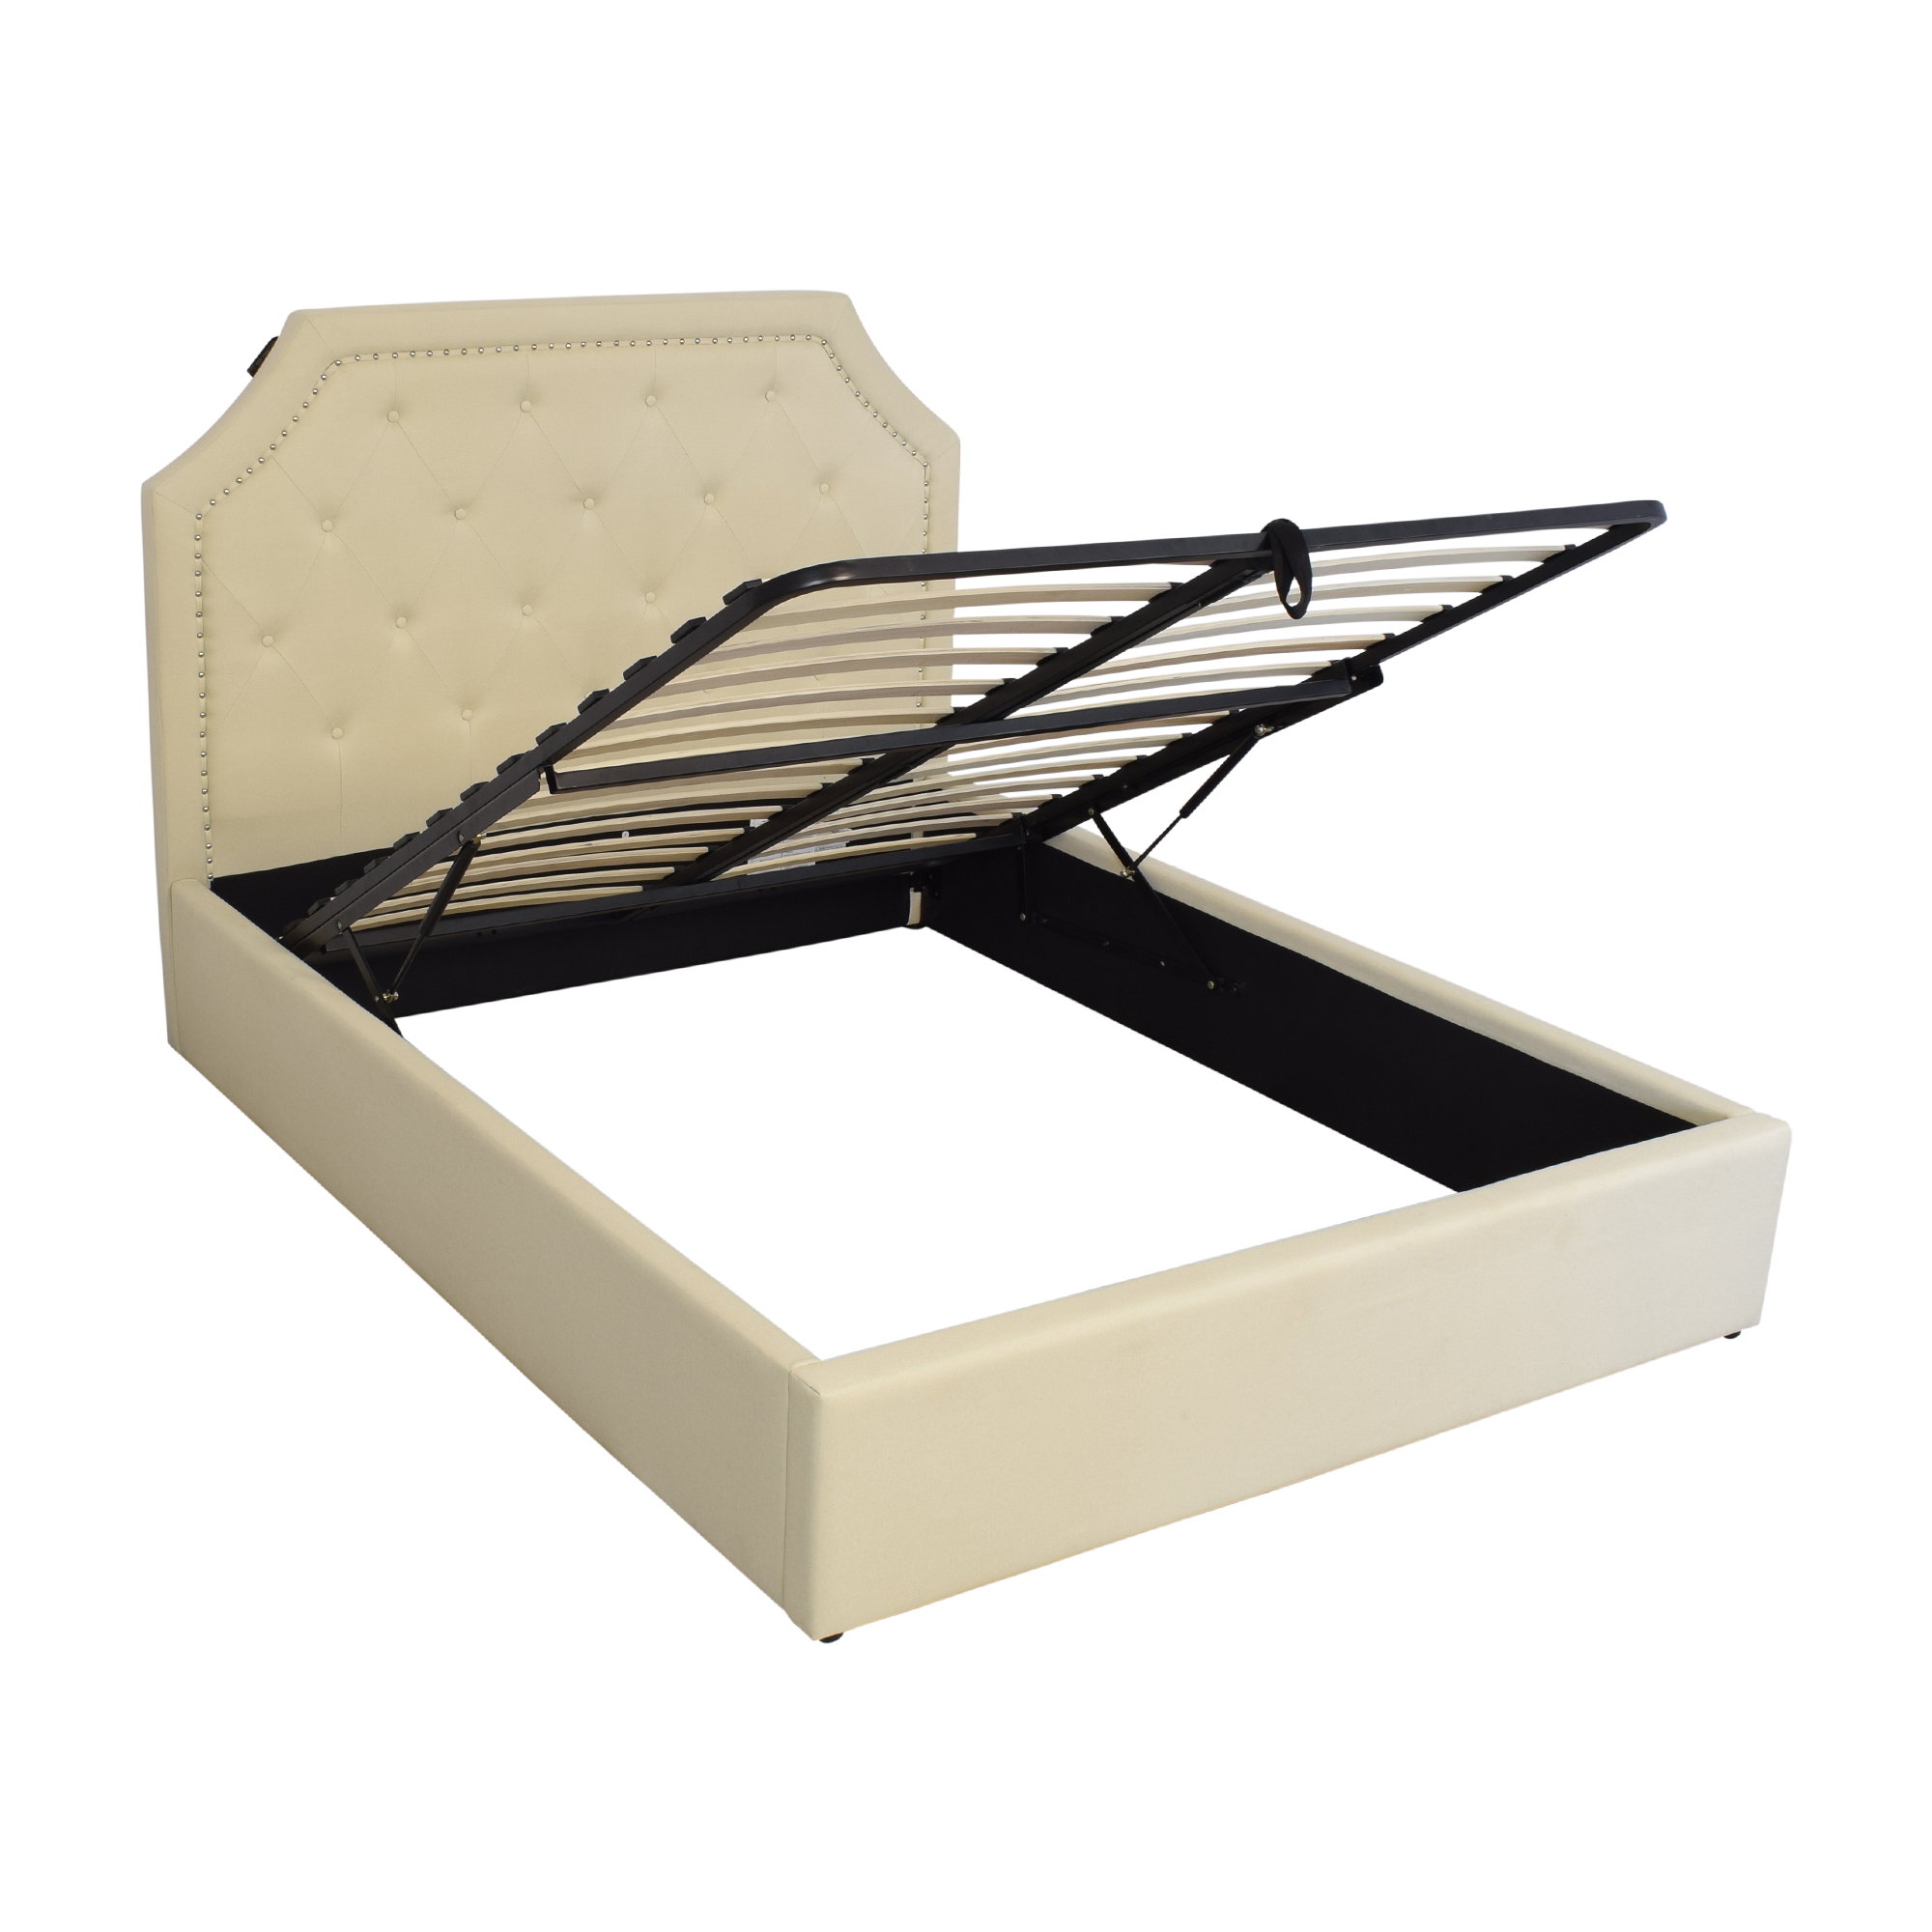 Coaster Hermosa Upholstered Hydraulic Lift Storage Queen Bed / Beds